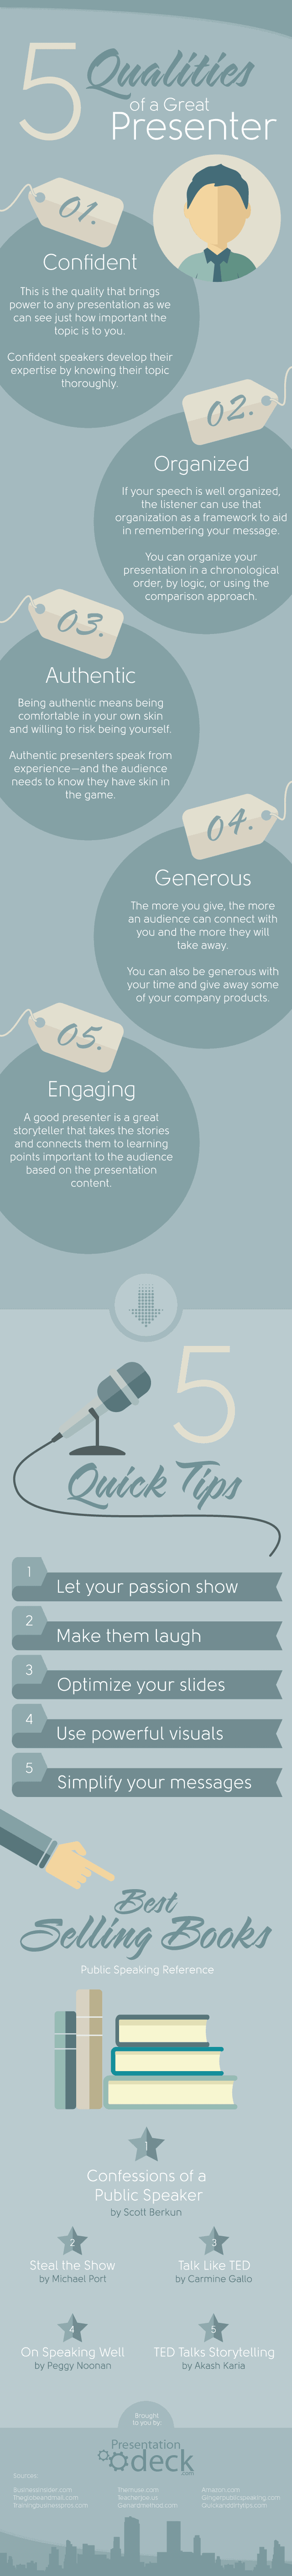 how to be a better presenter